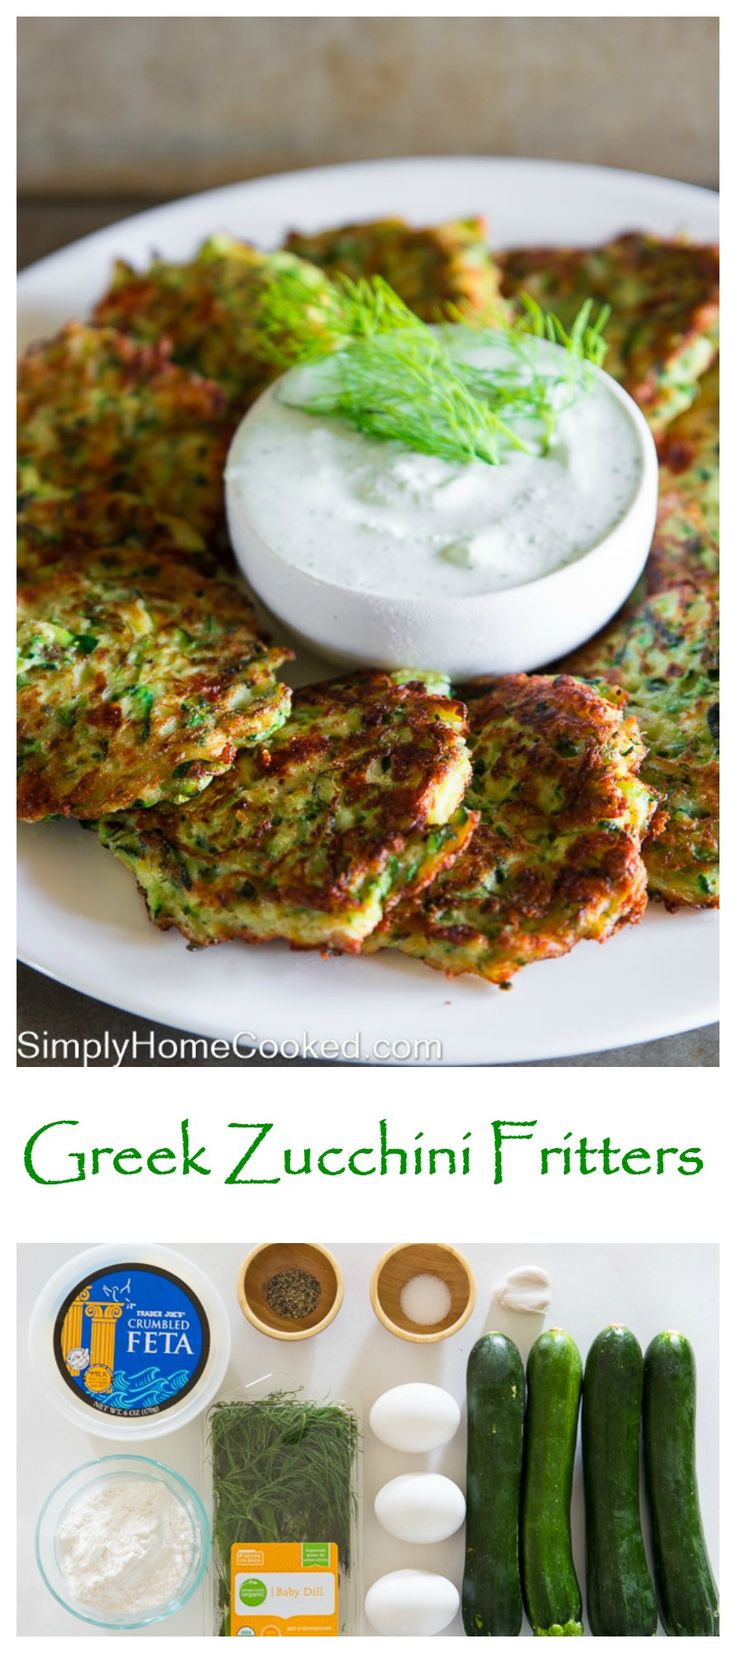 Crispy Greek zucchini fritters with fresh dill and crumbled feta cheese. Served with homemade tzatziki sauce.